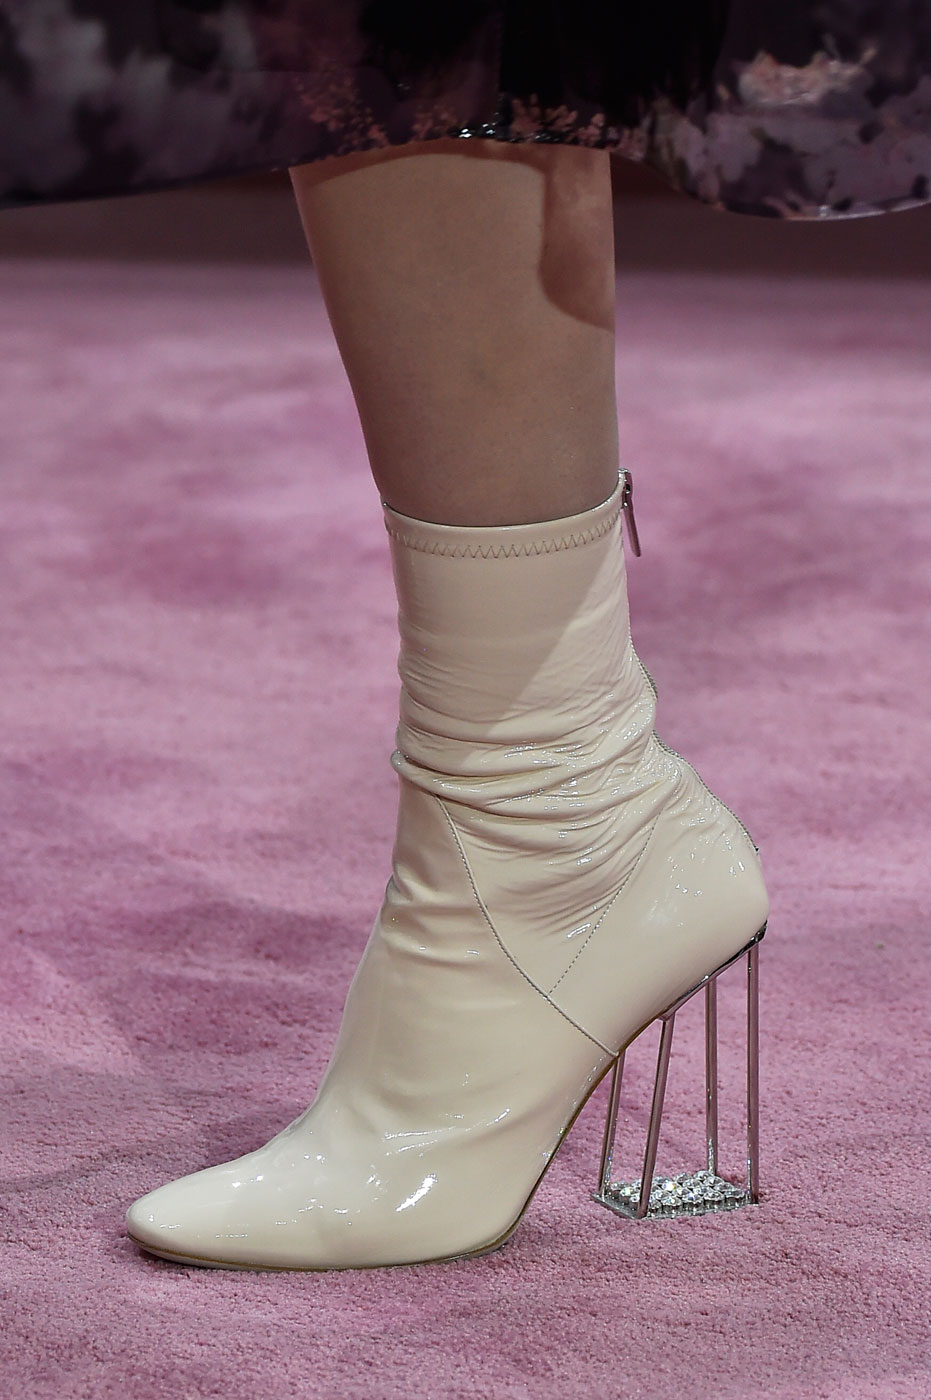 Christian-Dior-fashion-runway-show-close-ups-haute-couture-paris-spring-summer-2015-the-impression-168